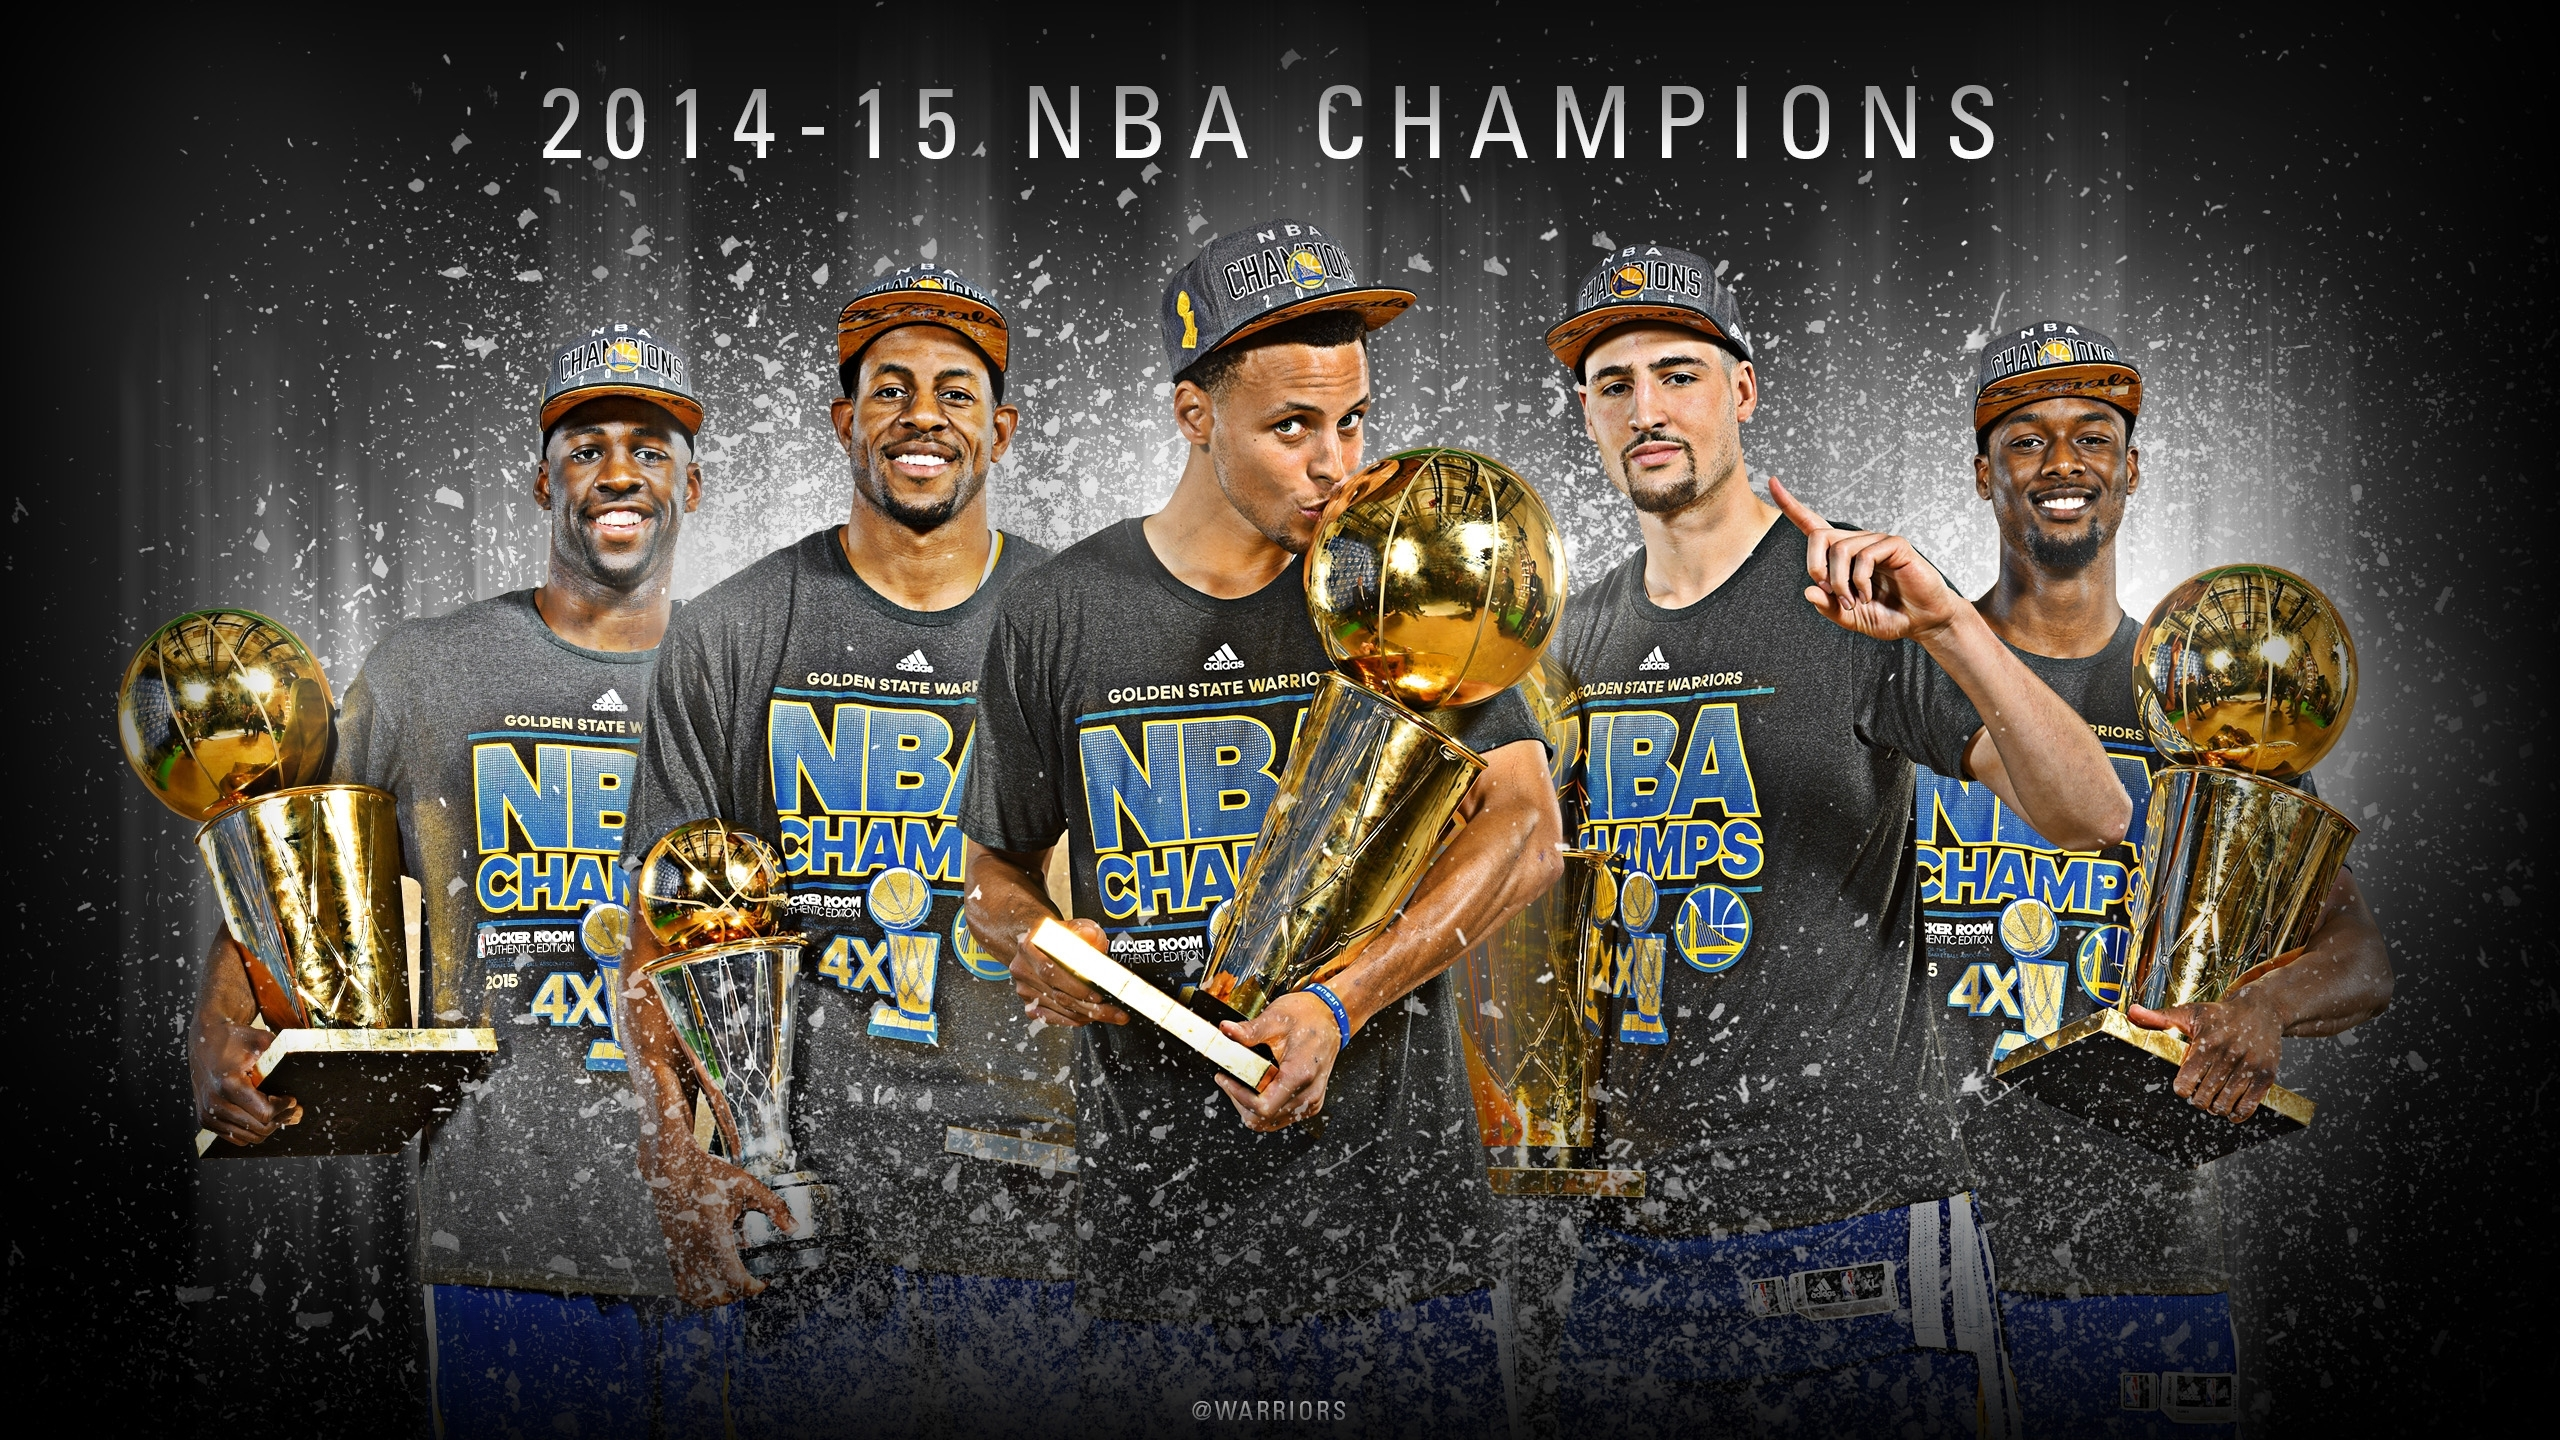 2015 nba champions | warriors artwork | pinterest | nba champions